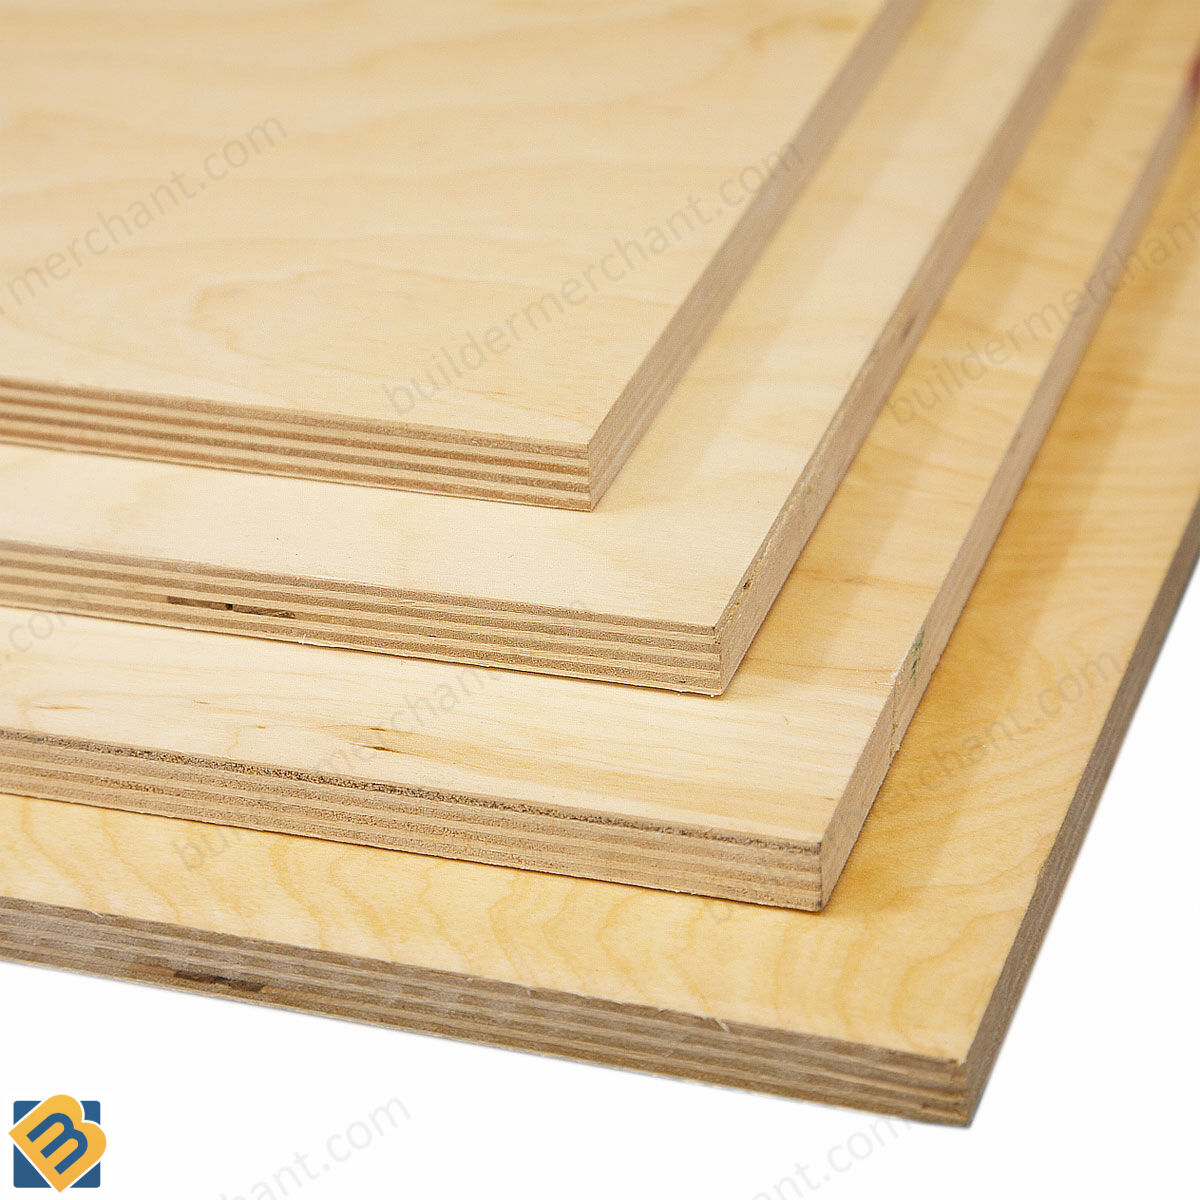 18mm Betonplex Birch Plywood Wbp Birch Plywood Sheets Baltic Birch Ply